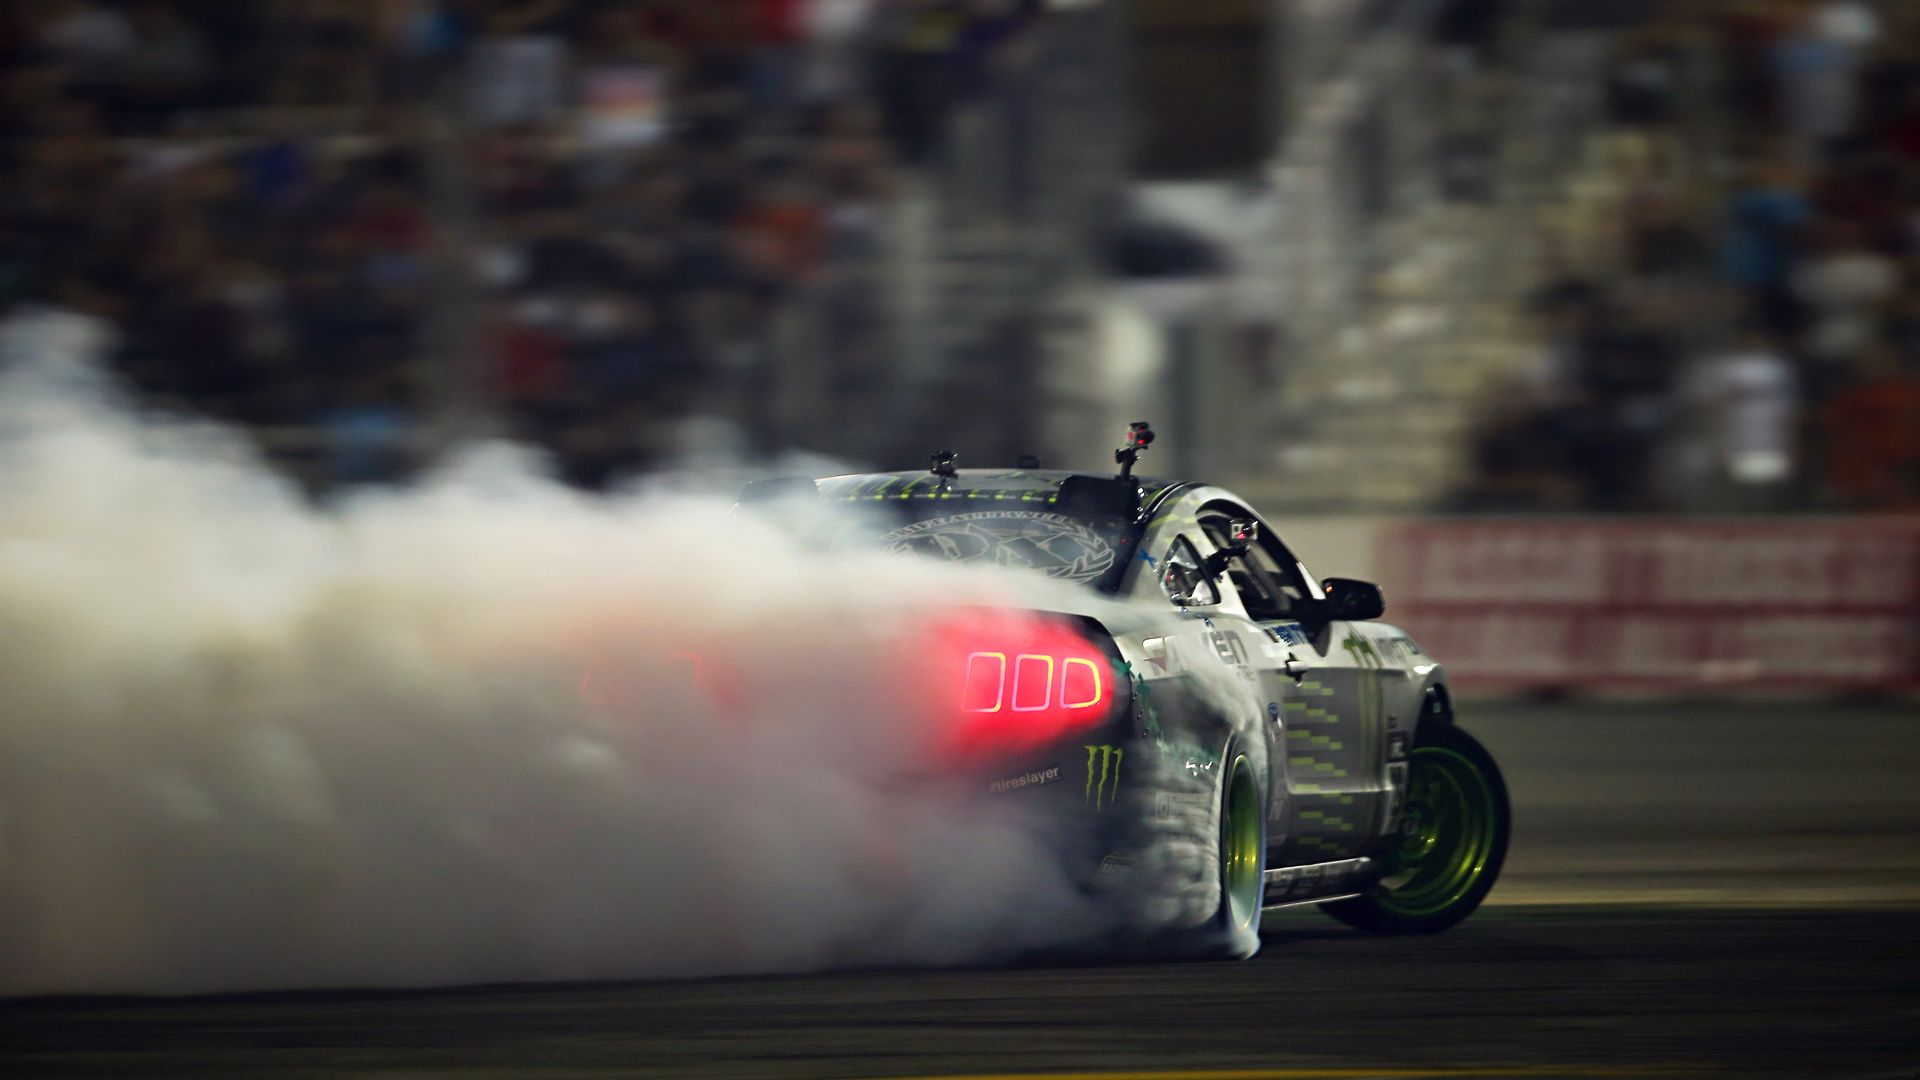 Drifting Wallpaper Picture Ford Mustang Car Mustang Cars Mustang